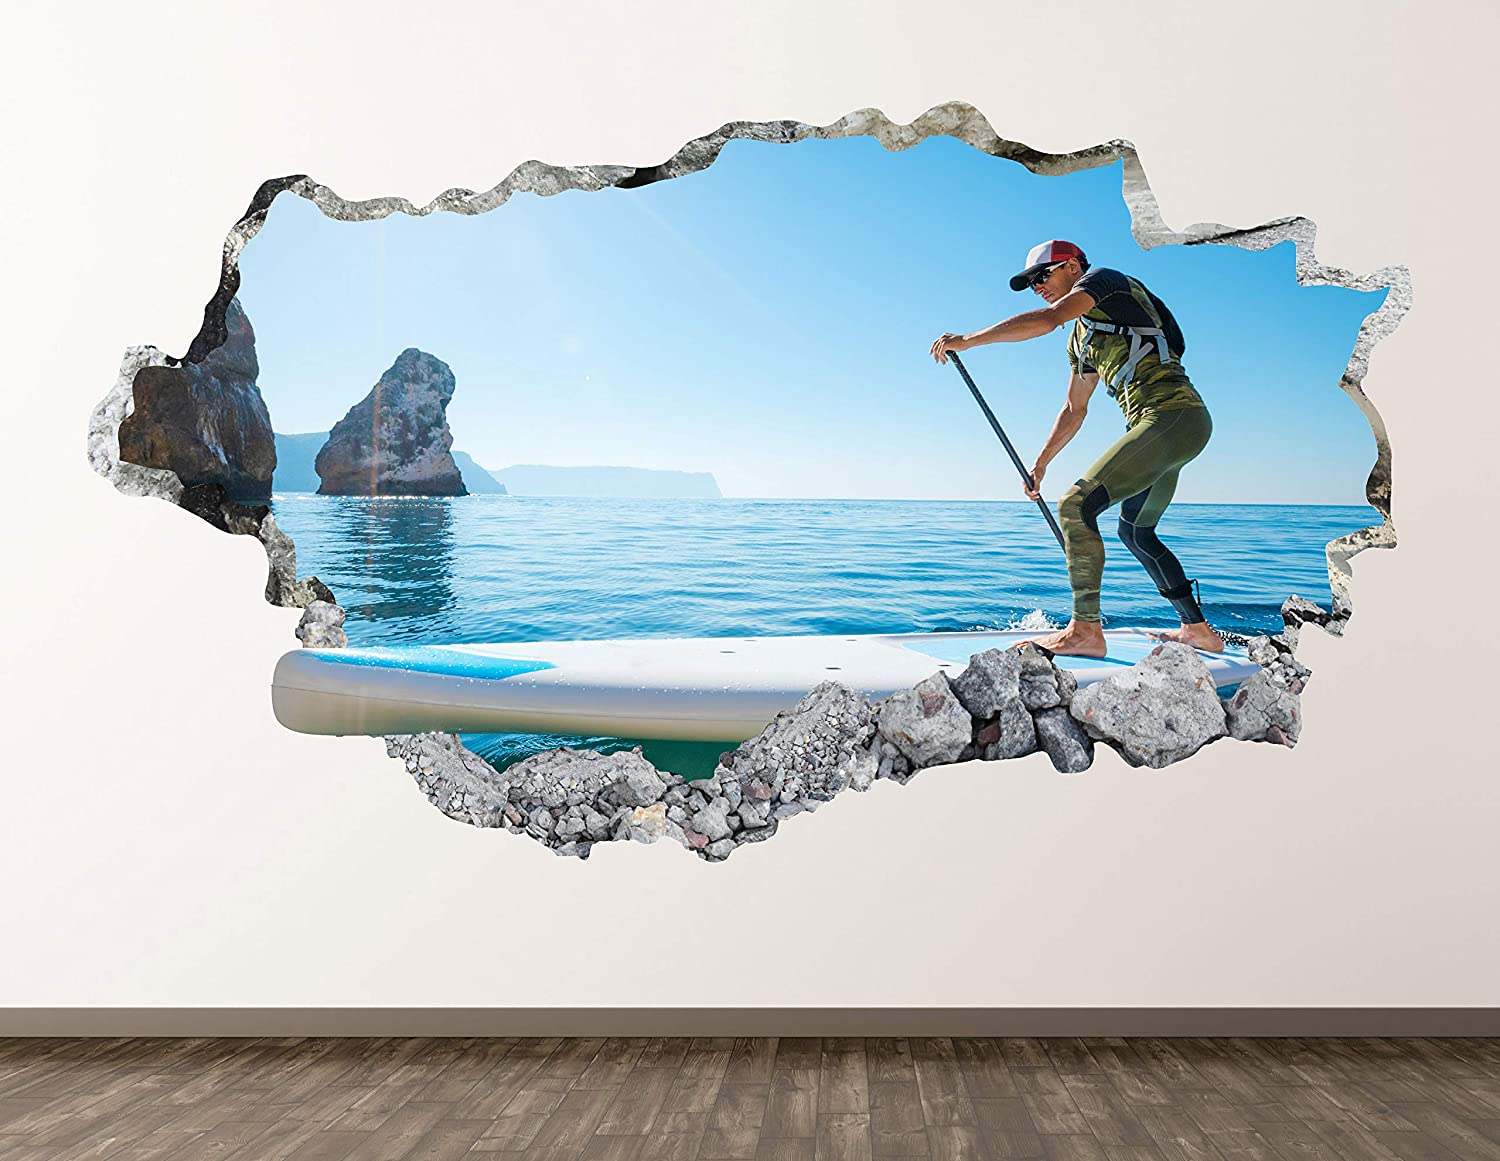 West Mountain Paddle Board Wall Decal Art Decor 3D Smashed Beach Sport Sticker Poster Kids Room Mural Custom Gift BL424 (30